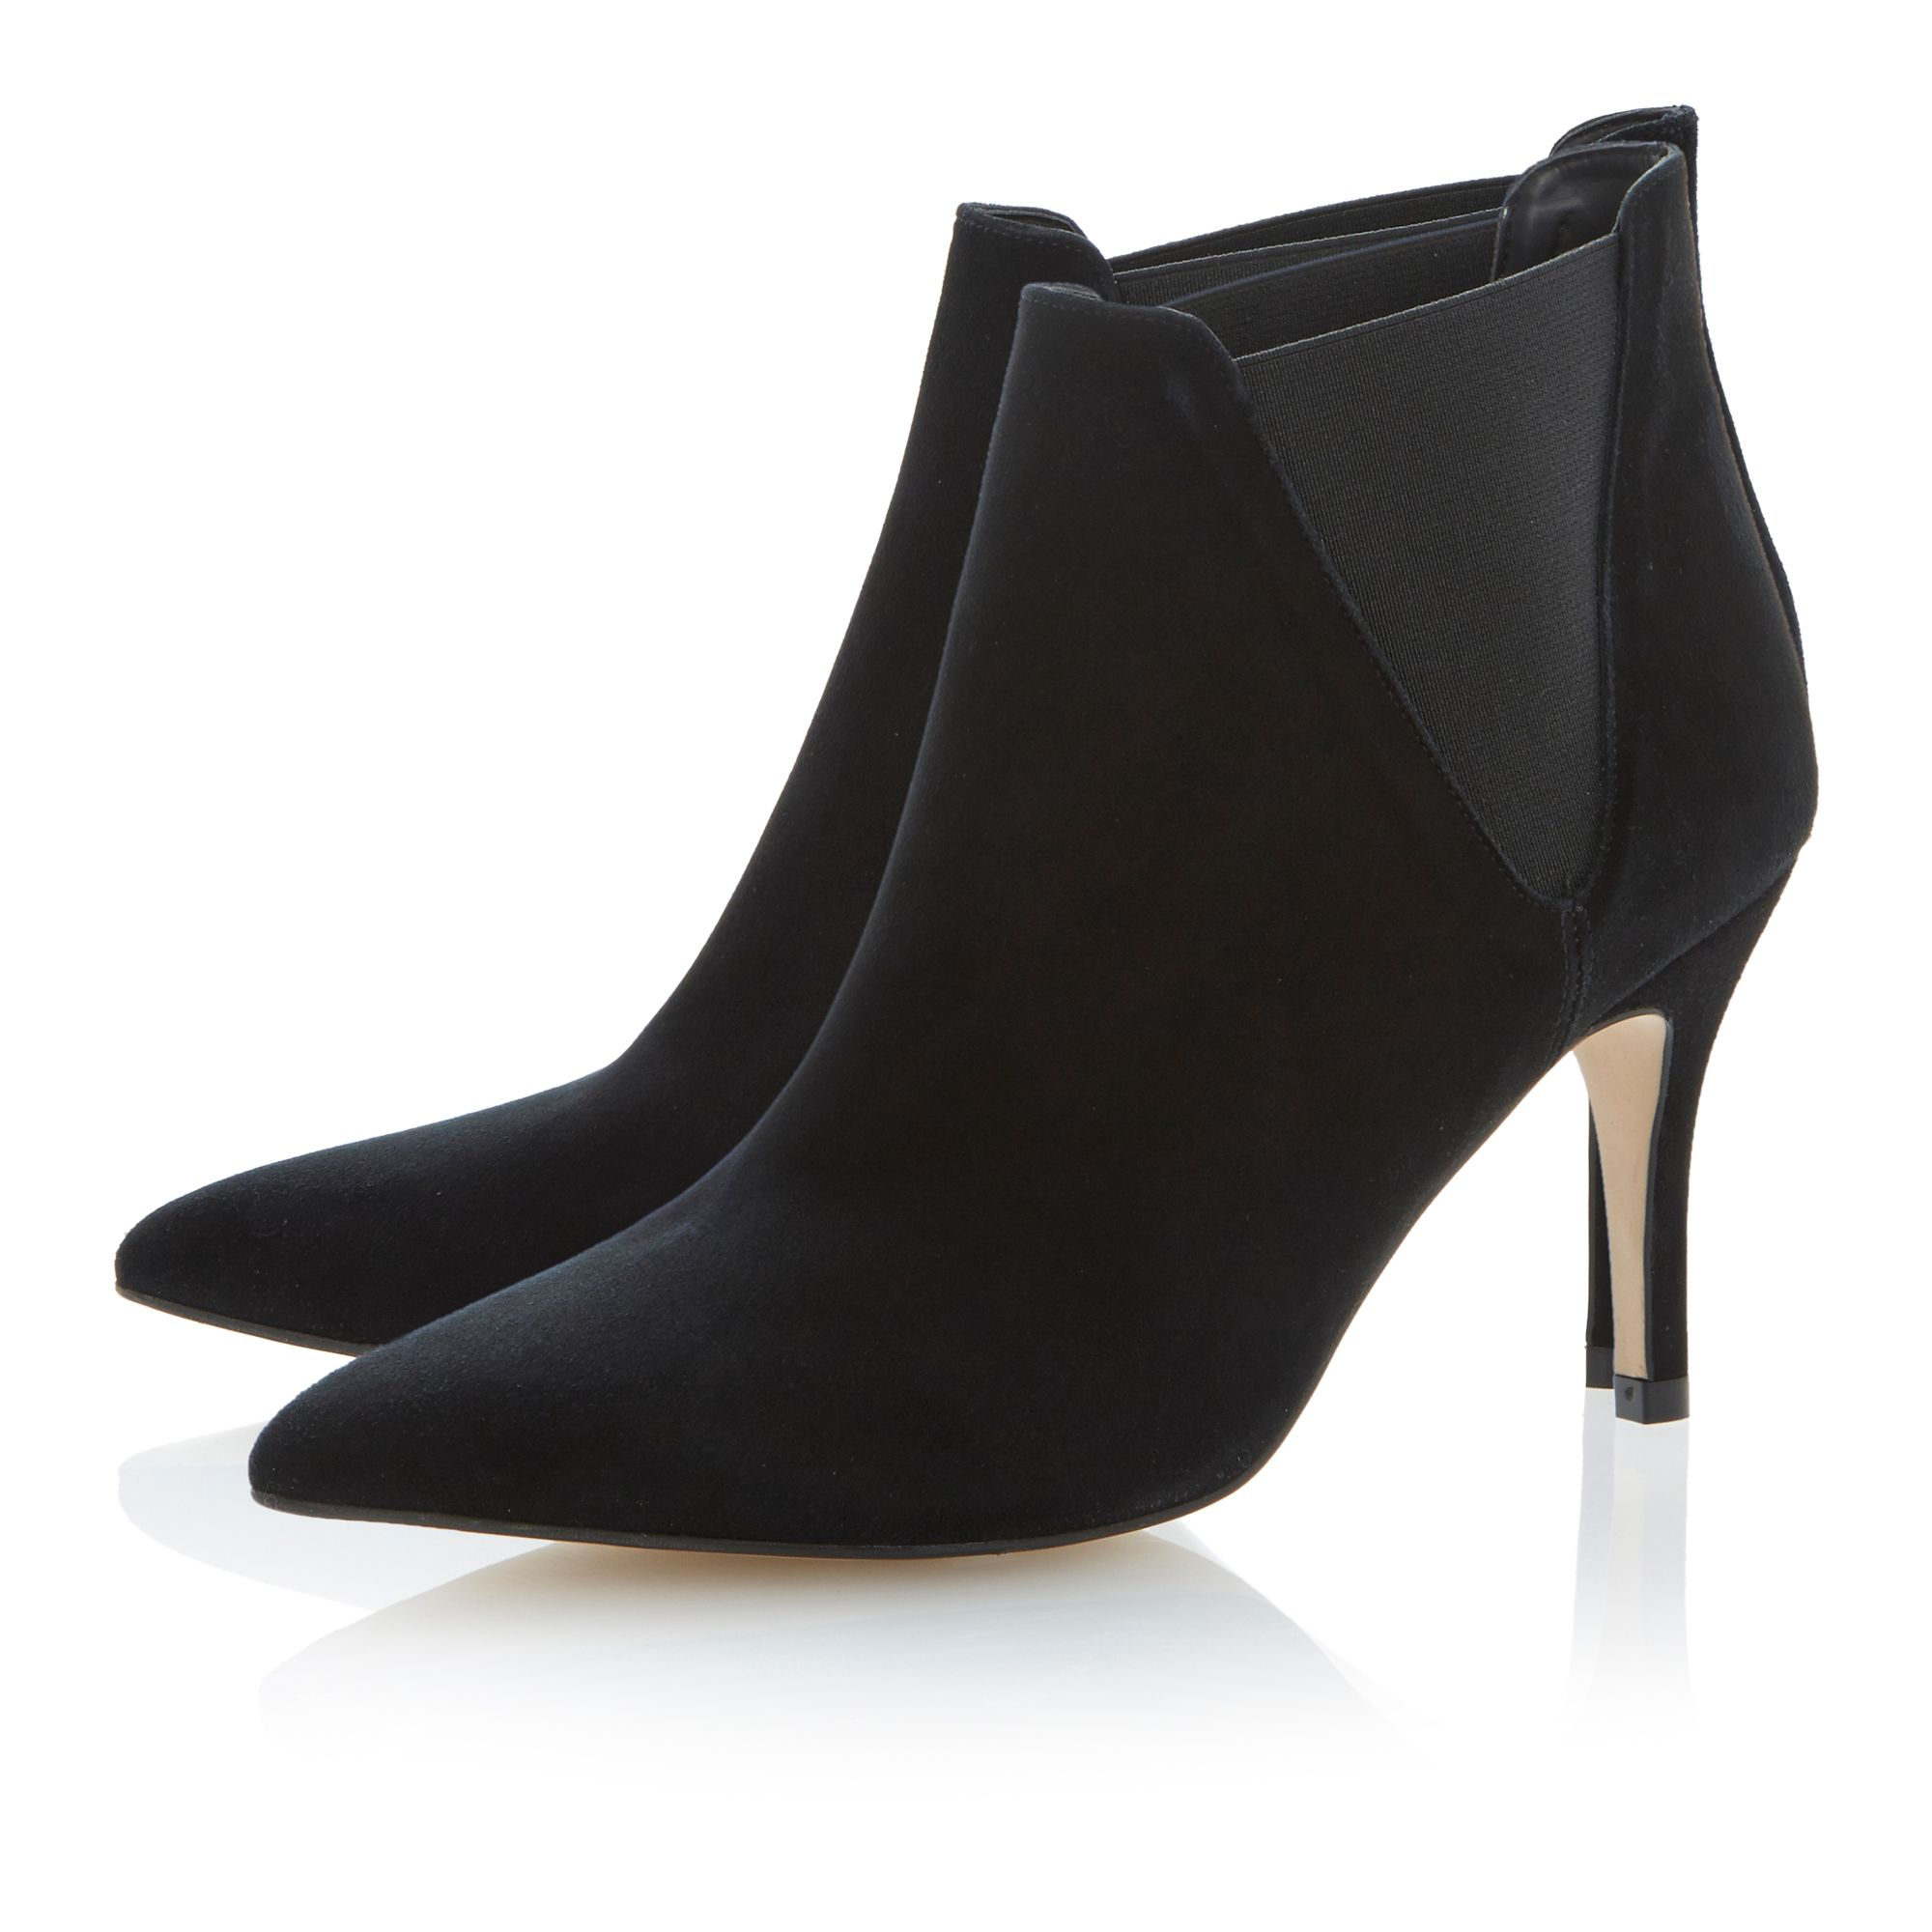 Nightfall point gusset ankle boots